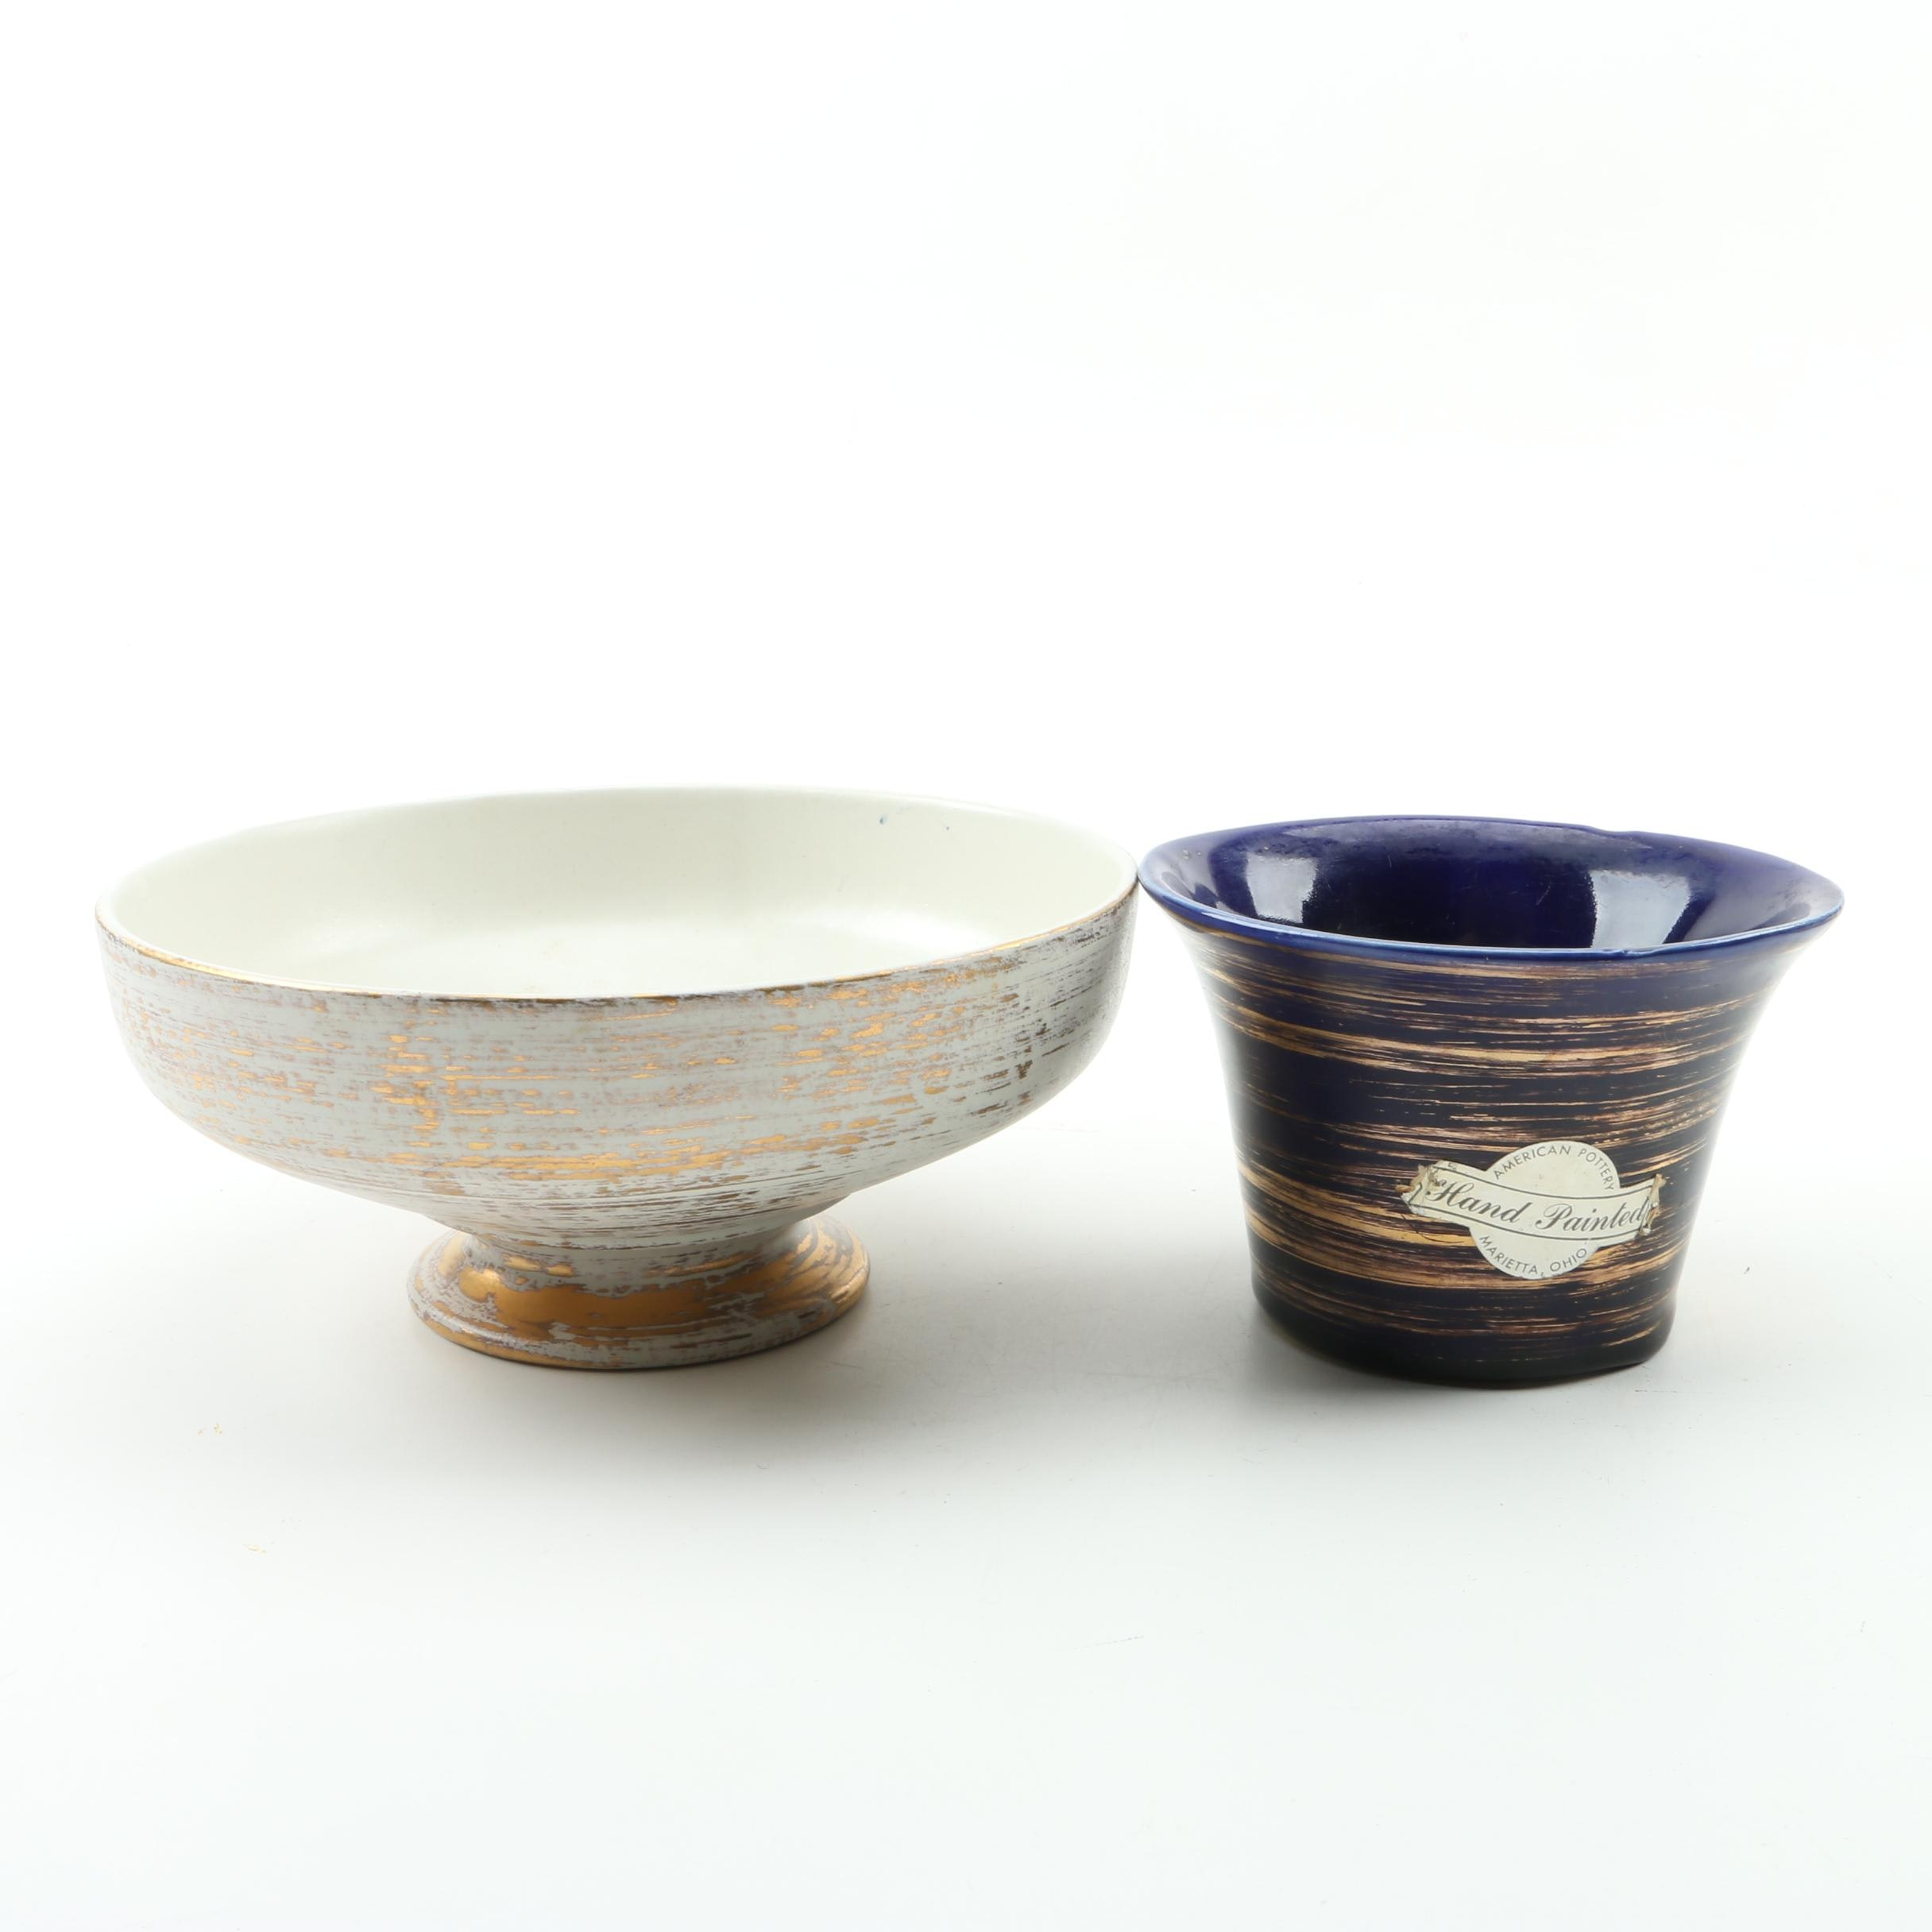 American Pottery Vase and Royal Haeger Footed Bowl